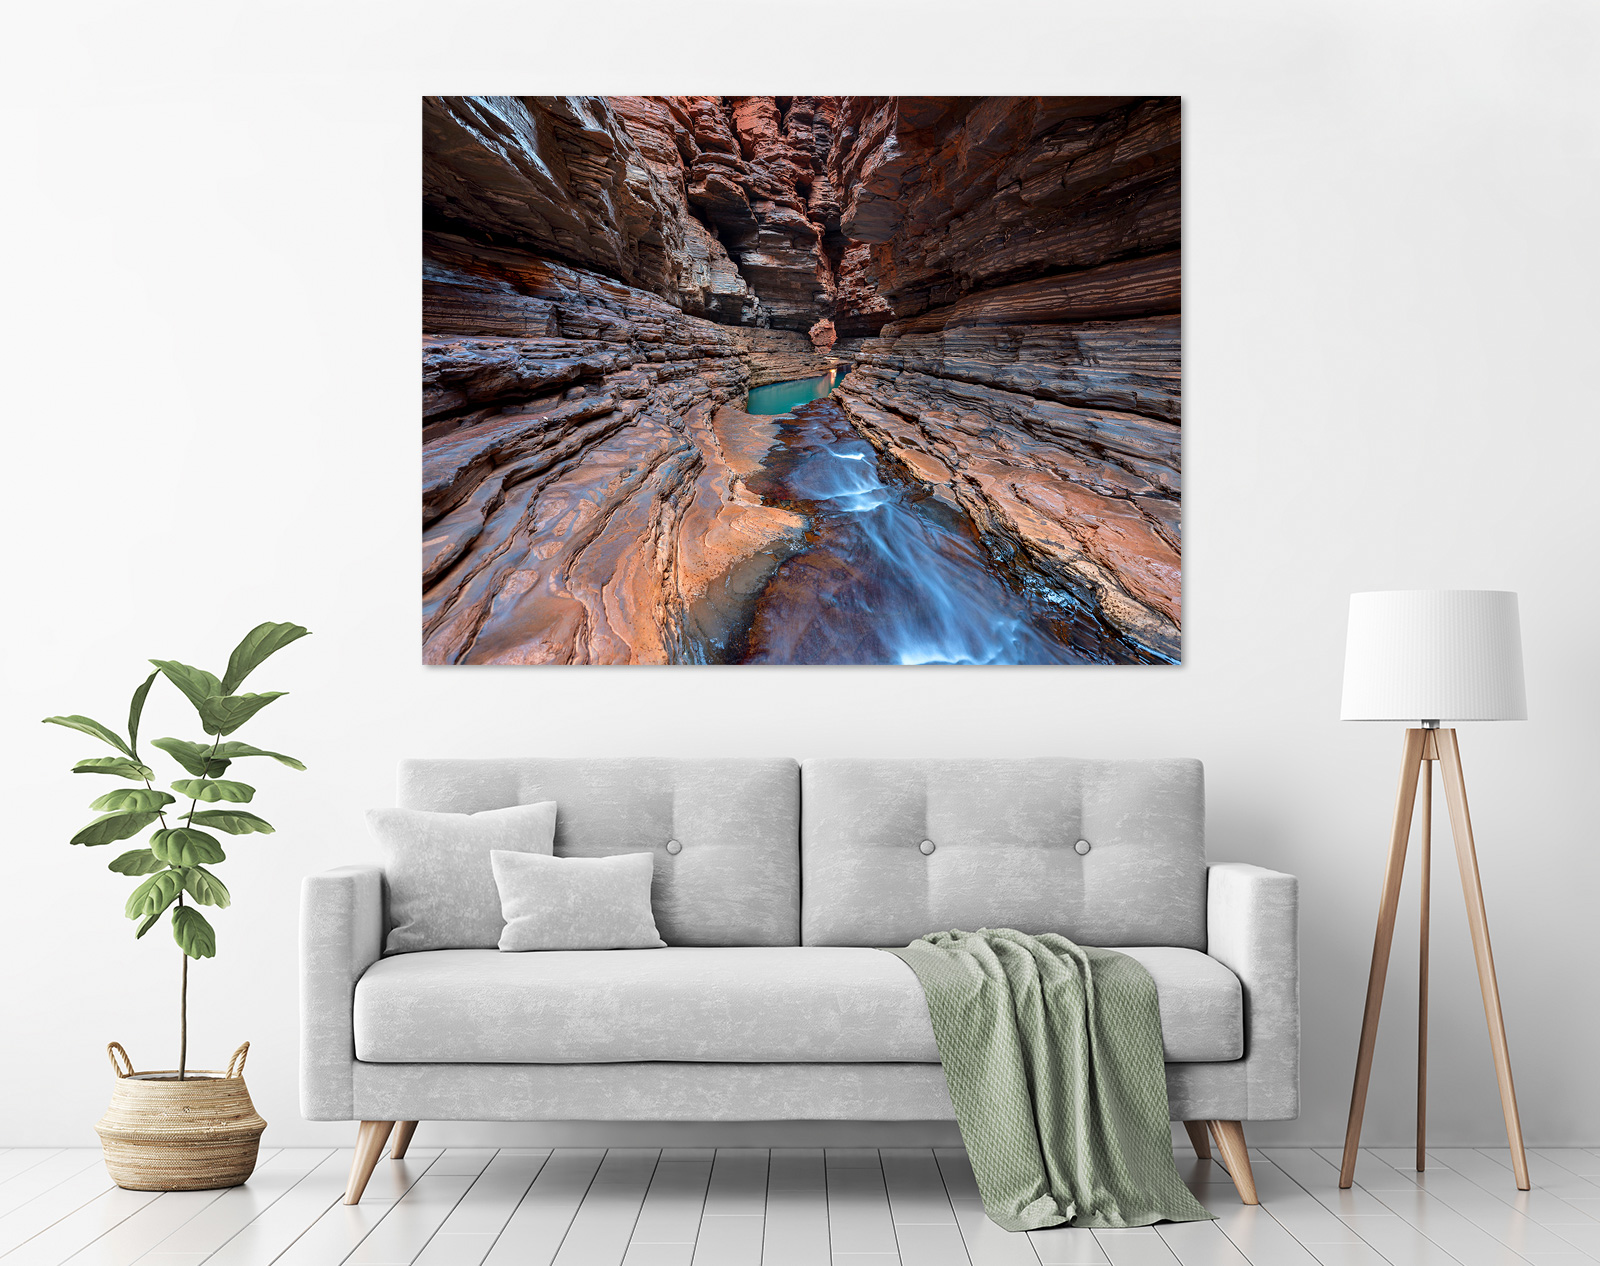 Jason Mazur - 'Kermits Pool, Hancock Gorge 037' in a room